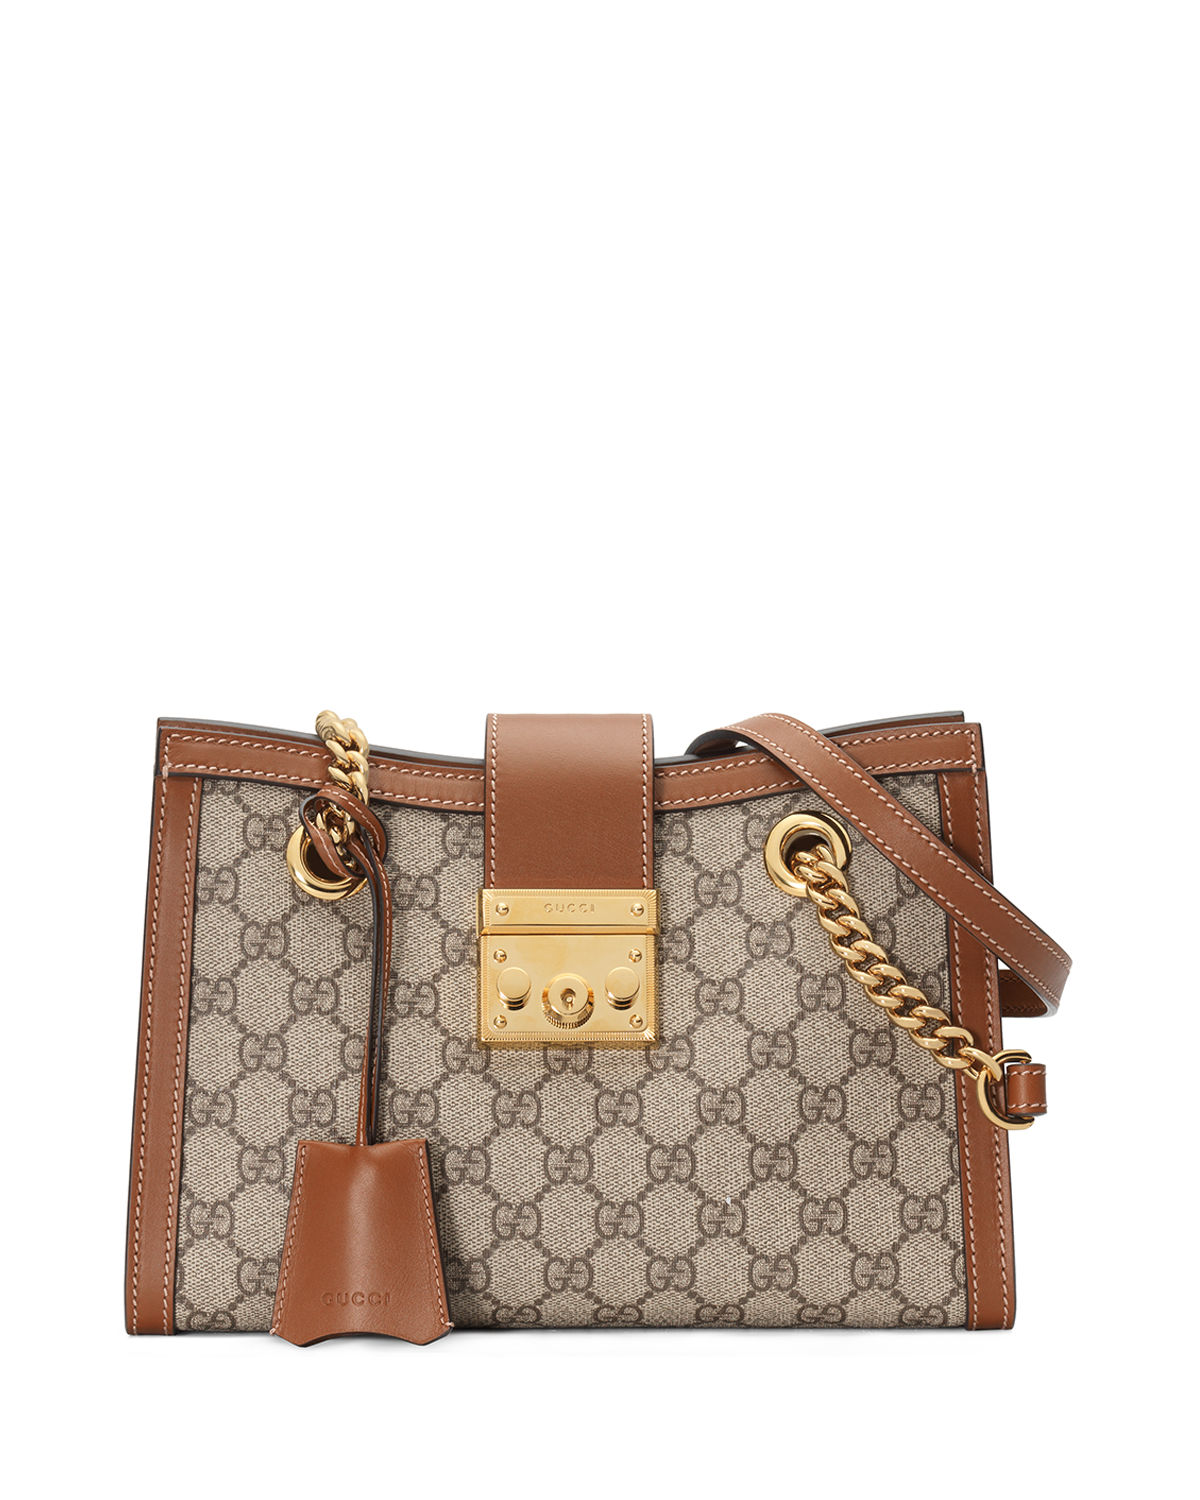 992a131547a6c8 Gucci Padlock Small Gg Supreme Canvas Shoulder Bag | Stanford Center ...